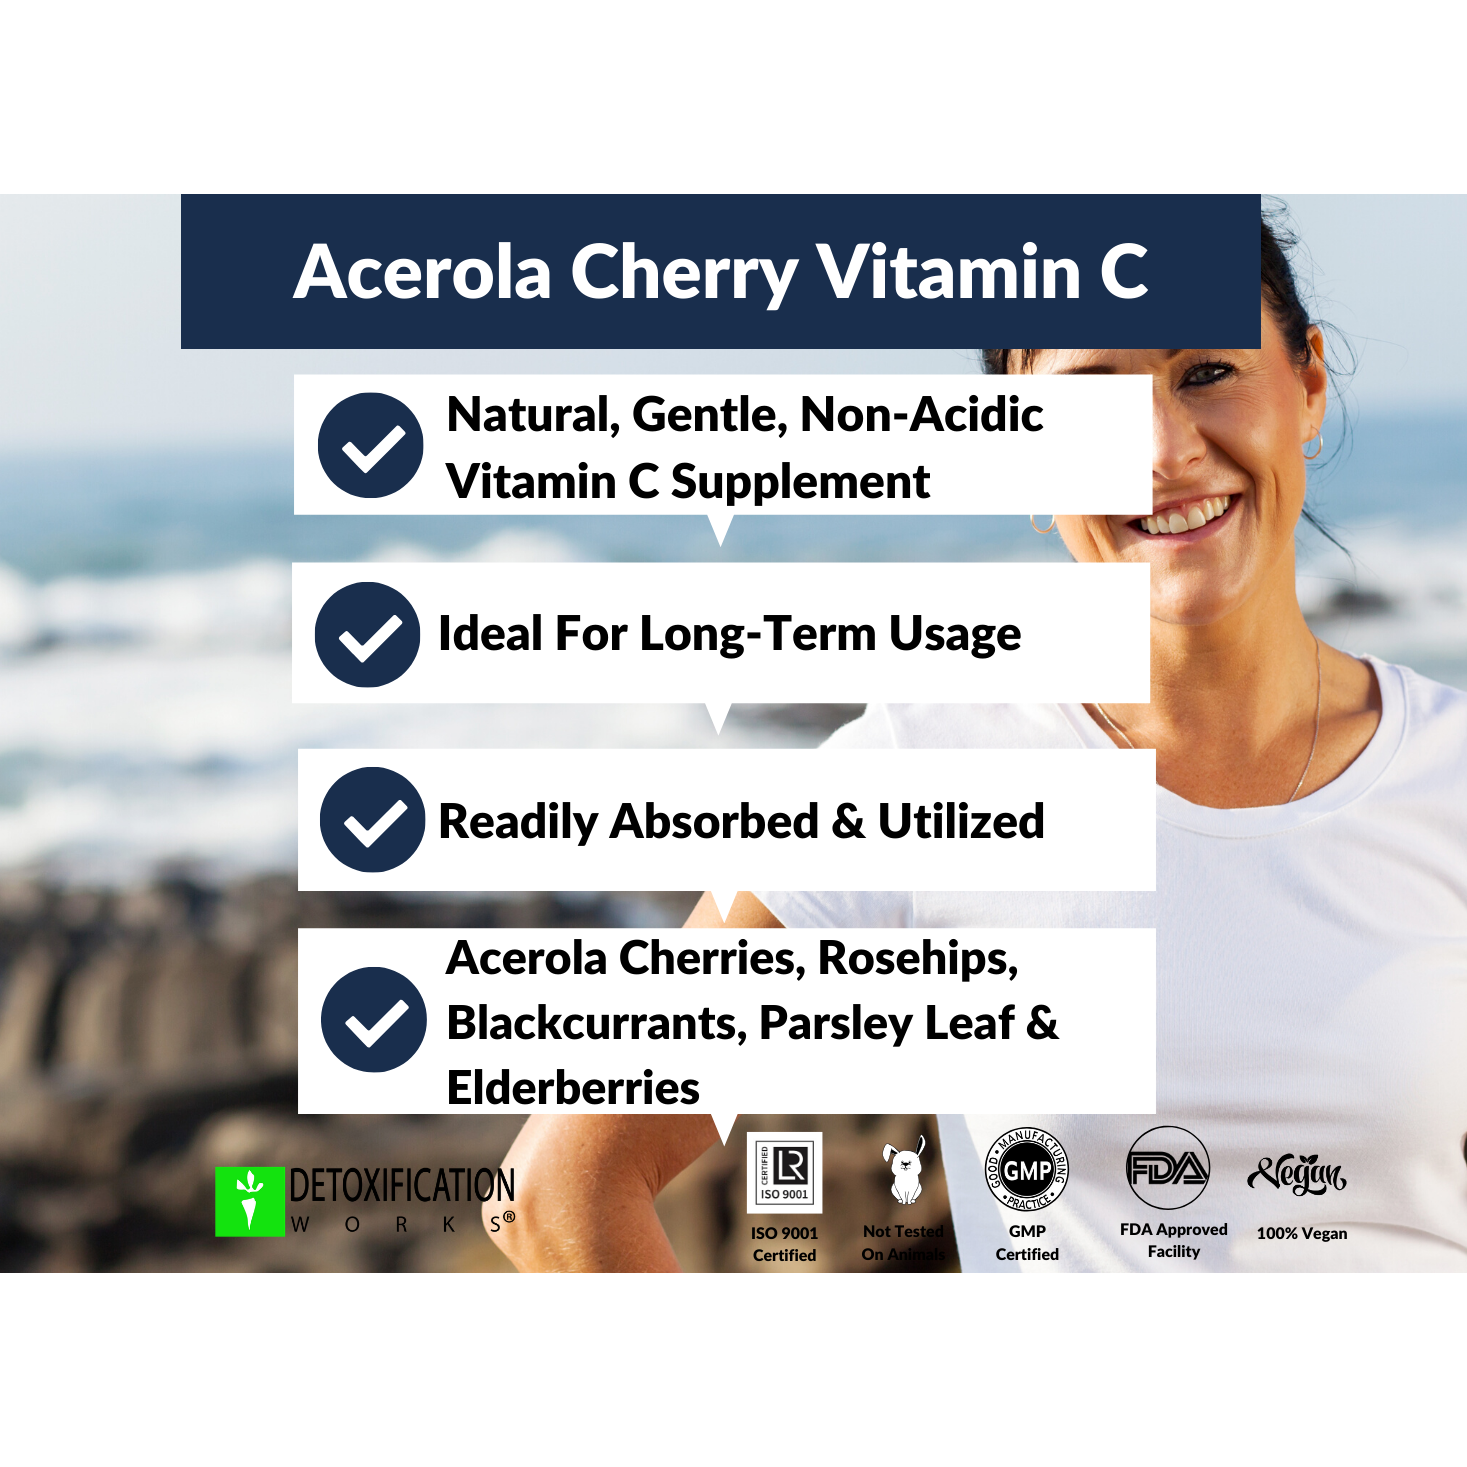 acerola cherry vitamin c Slide 4